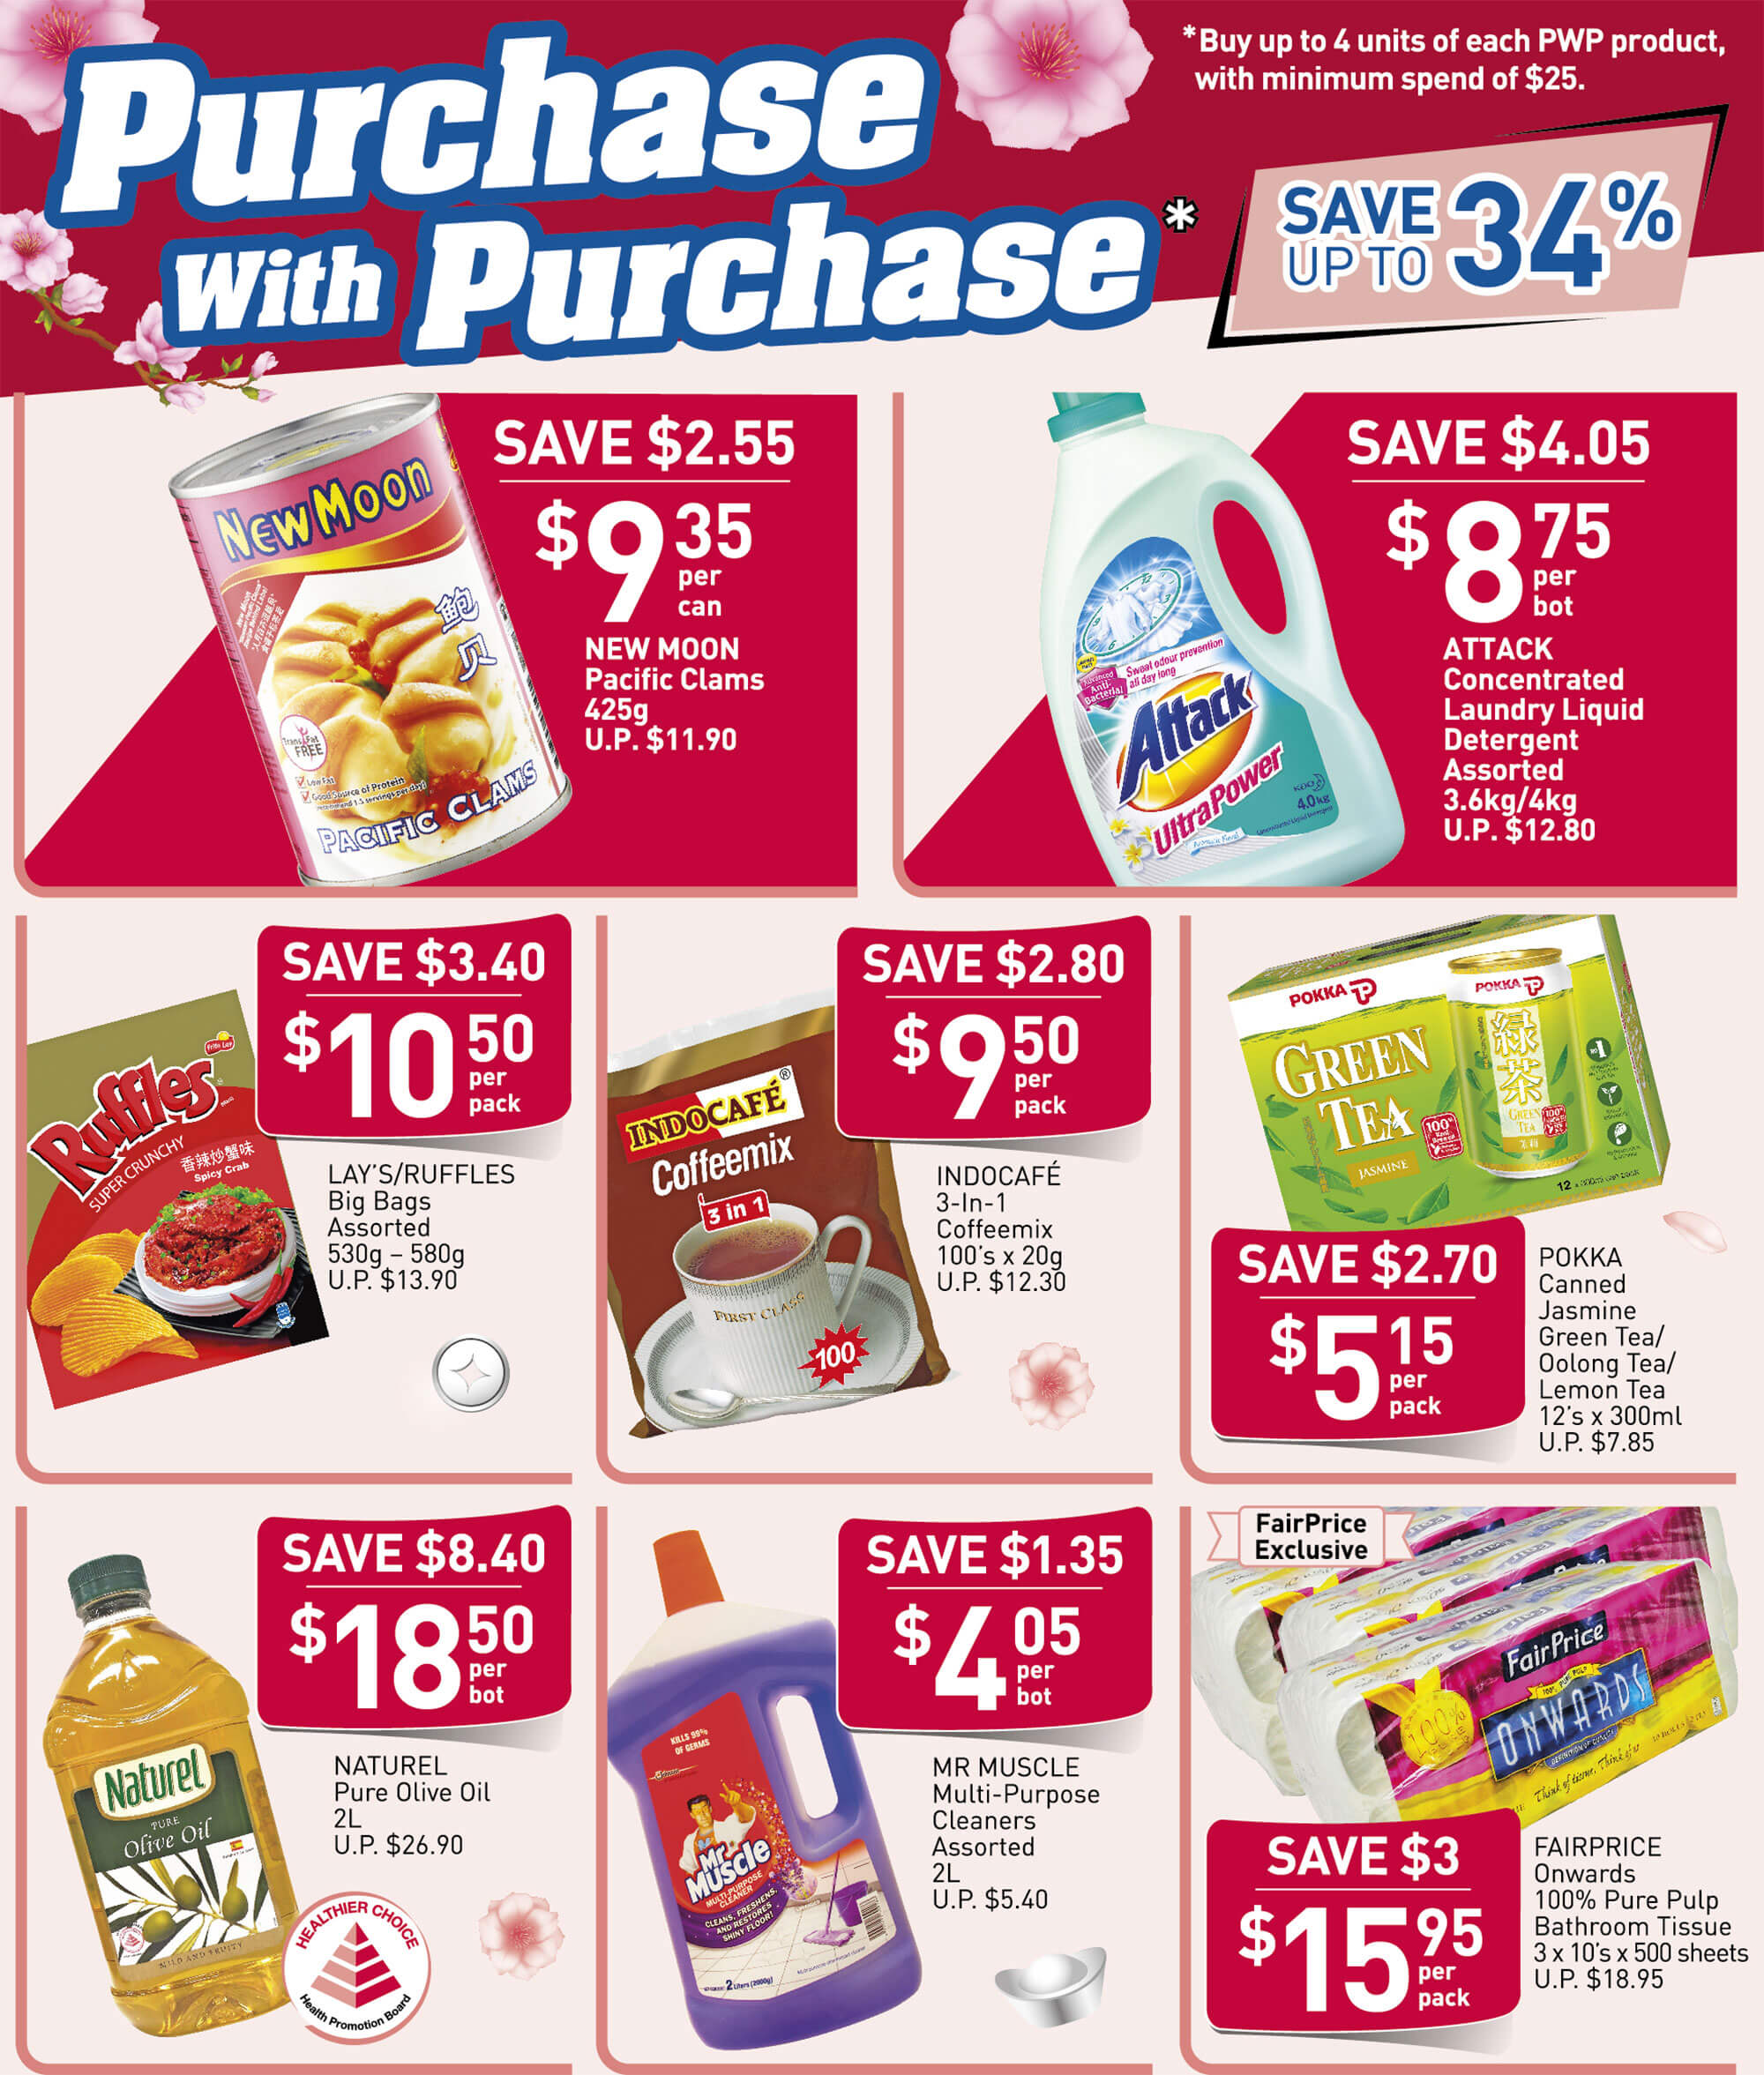 NTUC FairPrice SG Your Weekly Saver Promotion 16-22 Jan 2020 | Why Not Deals 5 & Promotions